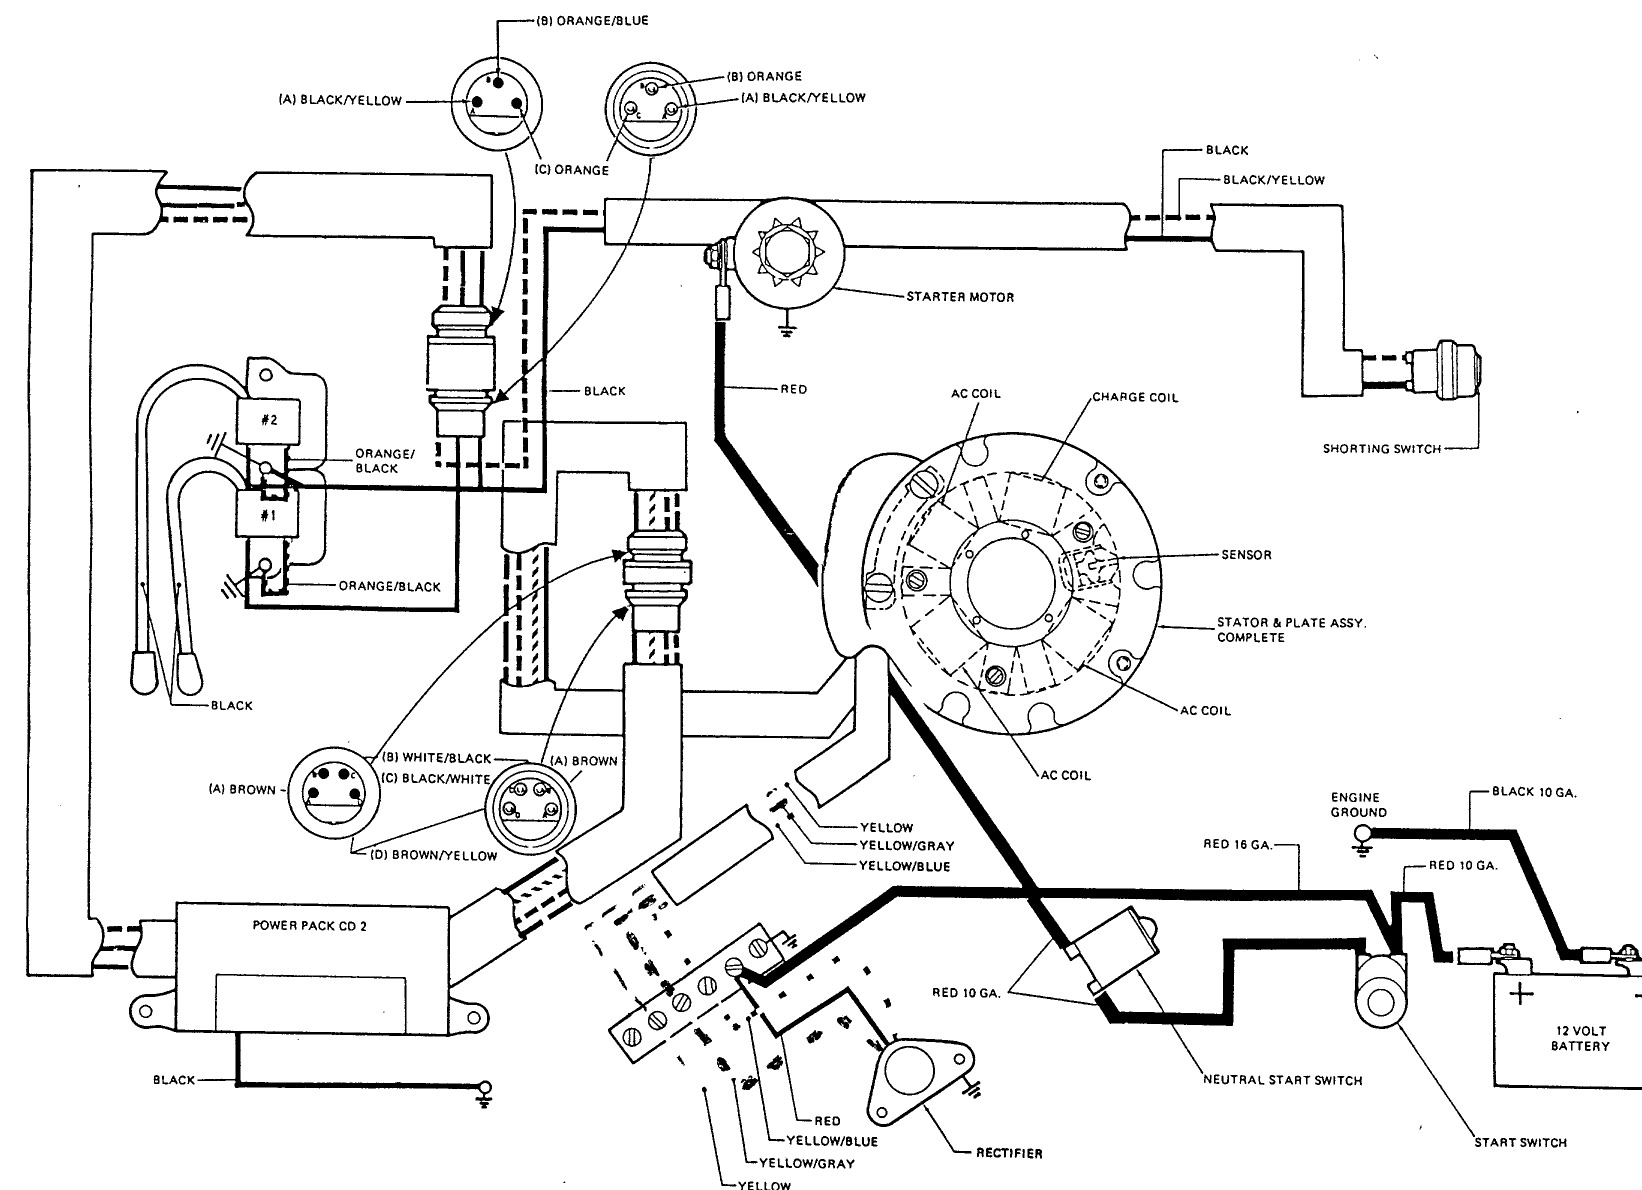 E7E6 70 Hp Evinrude Outboard Motor Wiring Diagram | Wiring ... Johnson Hp Outboard Motor Wiring Diagram on